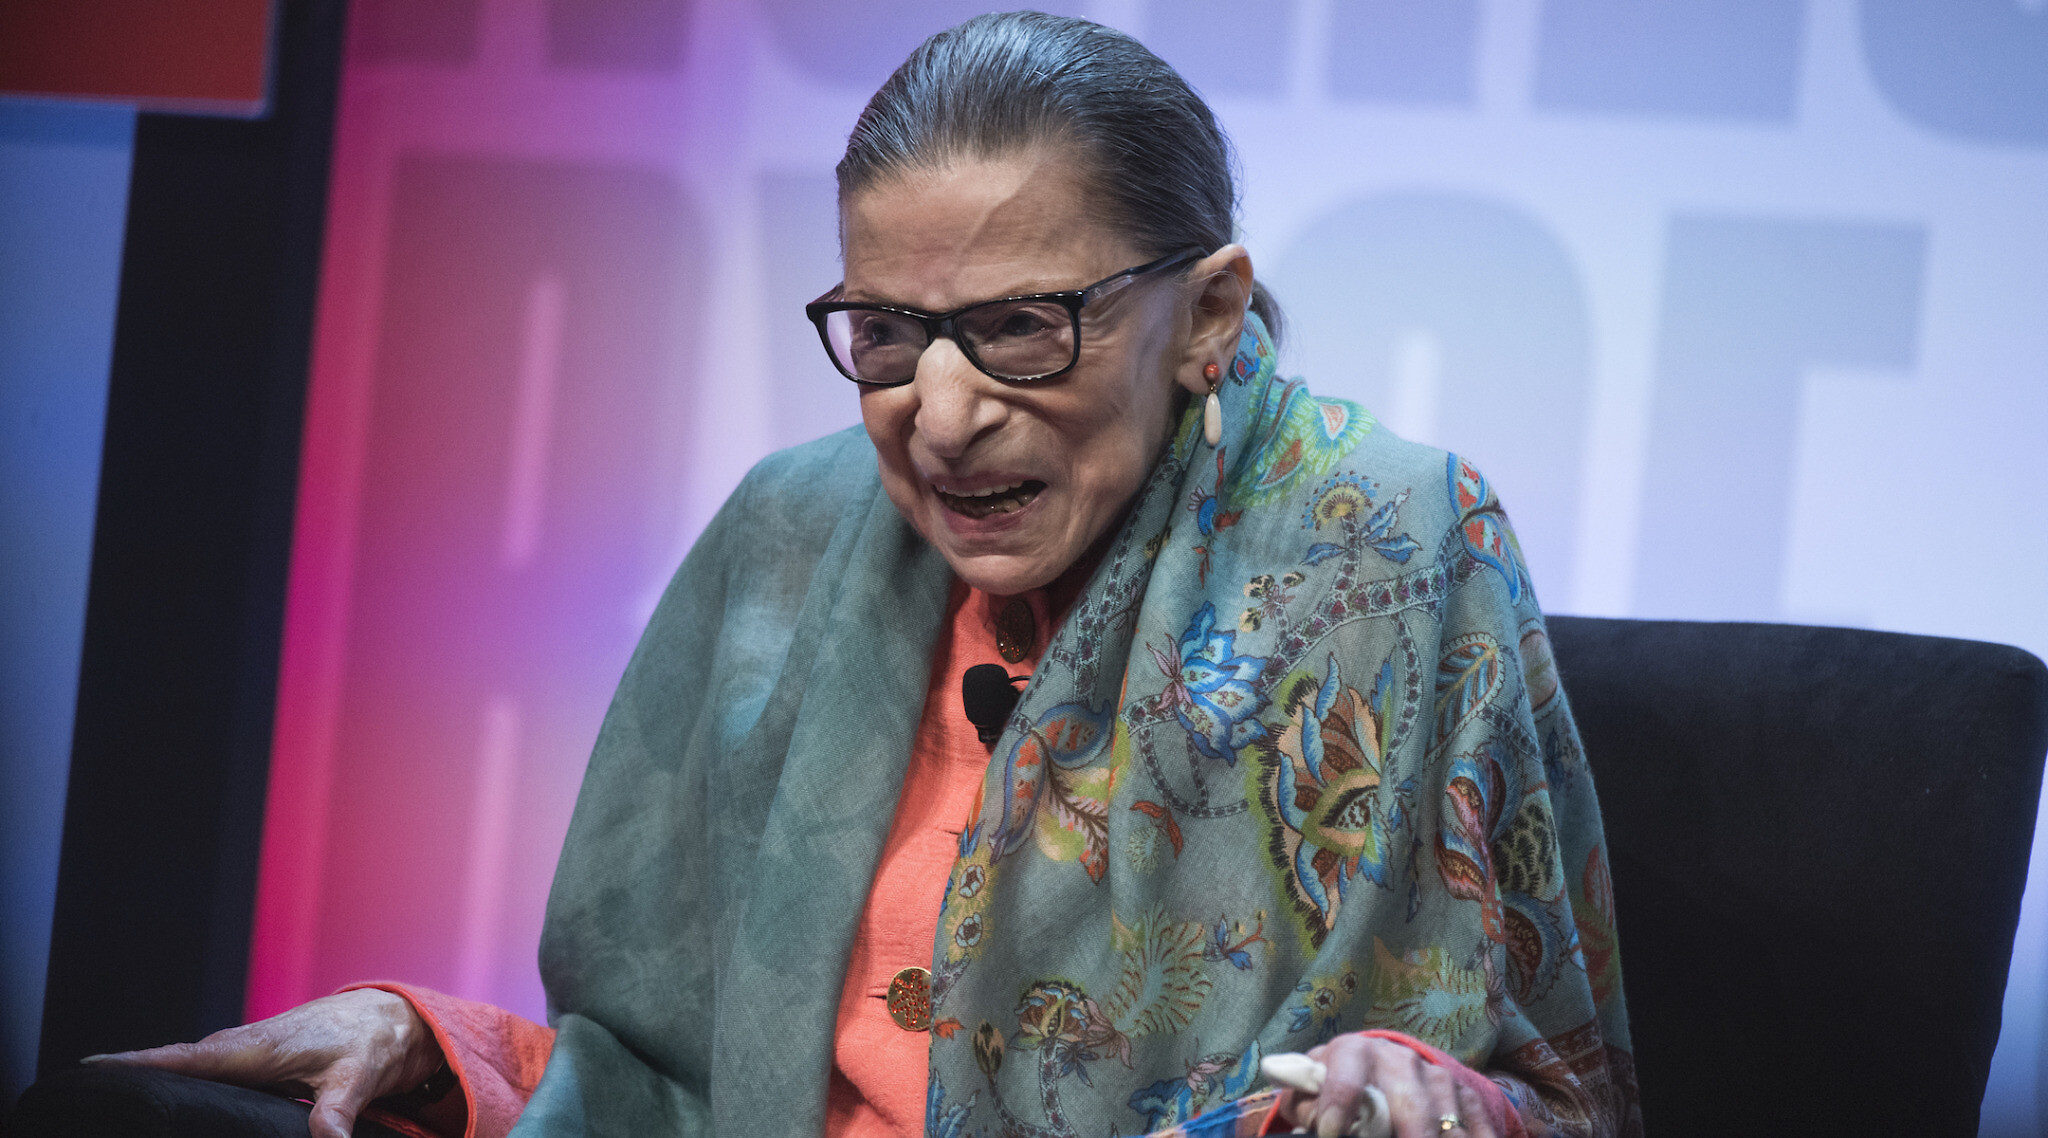 Ruth Bader Ginsburg Says Cancer Has Returned The Pittsburgh Jewish Chronicle